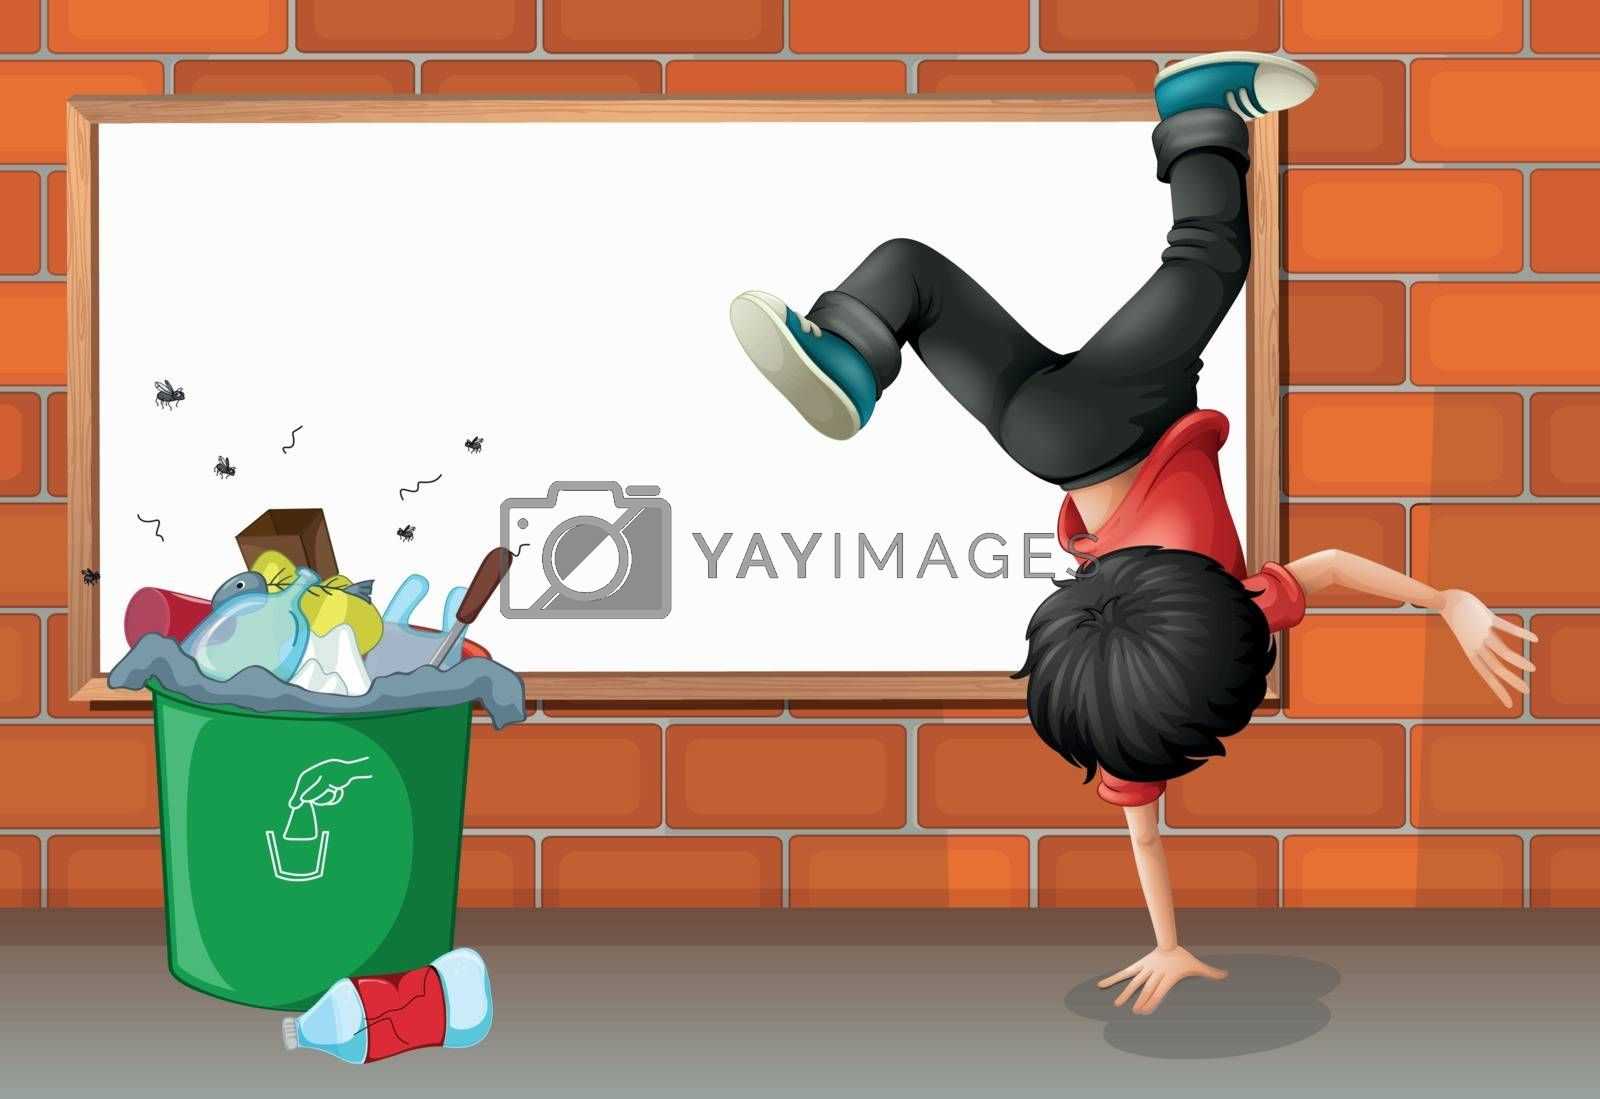 Illustration of a boy breakdancing near a trash can with an empty board